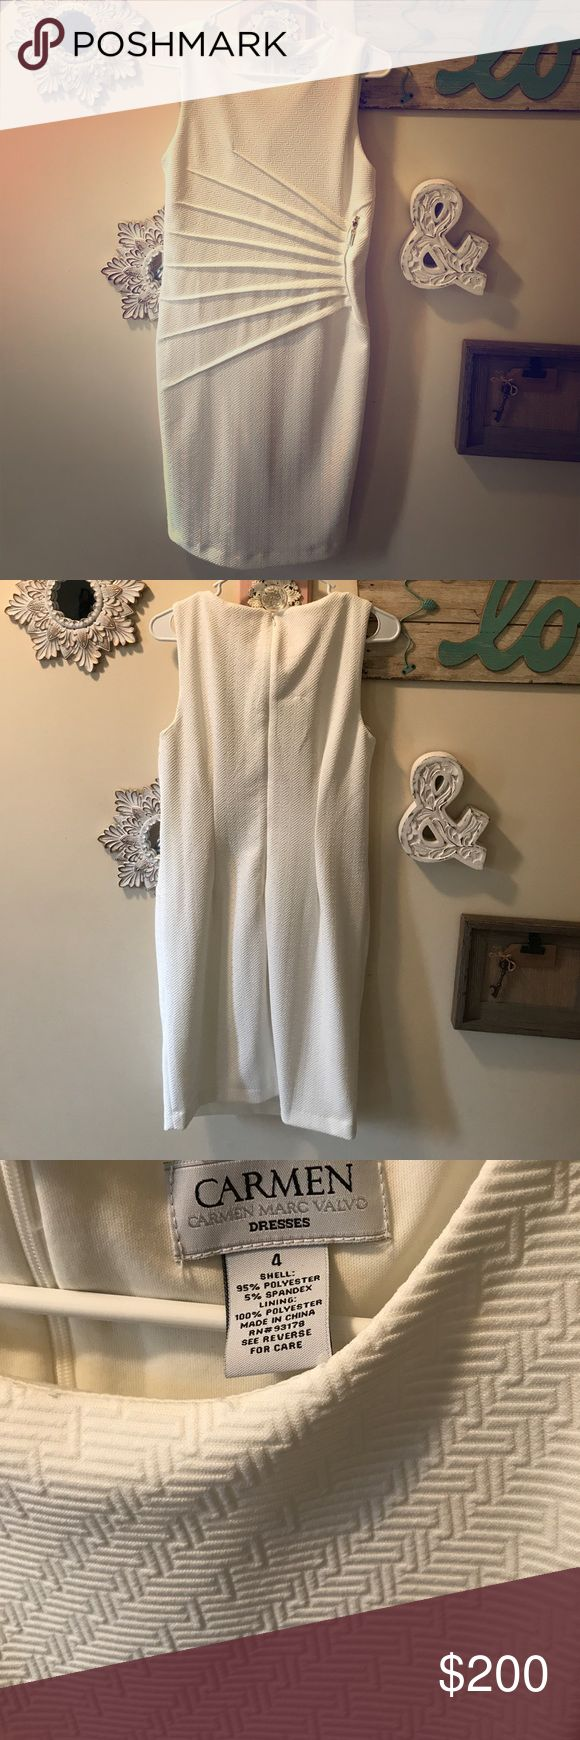 Gorgeous Woman's White Dress This is a gorgeous Woman's Dress by Carmen Marc Valvo👗 It is a size 4, but is stretchy so I would say it could fit Size 4-8! It is in perfect condition and was worn once for a couple hours at my wedding rehearsal! There are no stains, tears or holes! It has a beautiful zipper design on the front and has a zip up in the back! This is perfect for a wedding dinner rehearsal, bachelorette party or just a night out!! 👗 Carmen Marc Valvo Dresses Midi